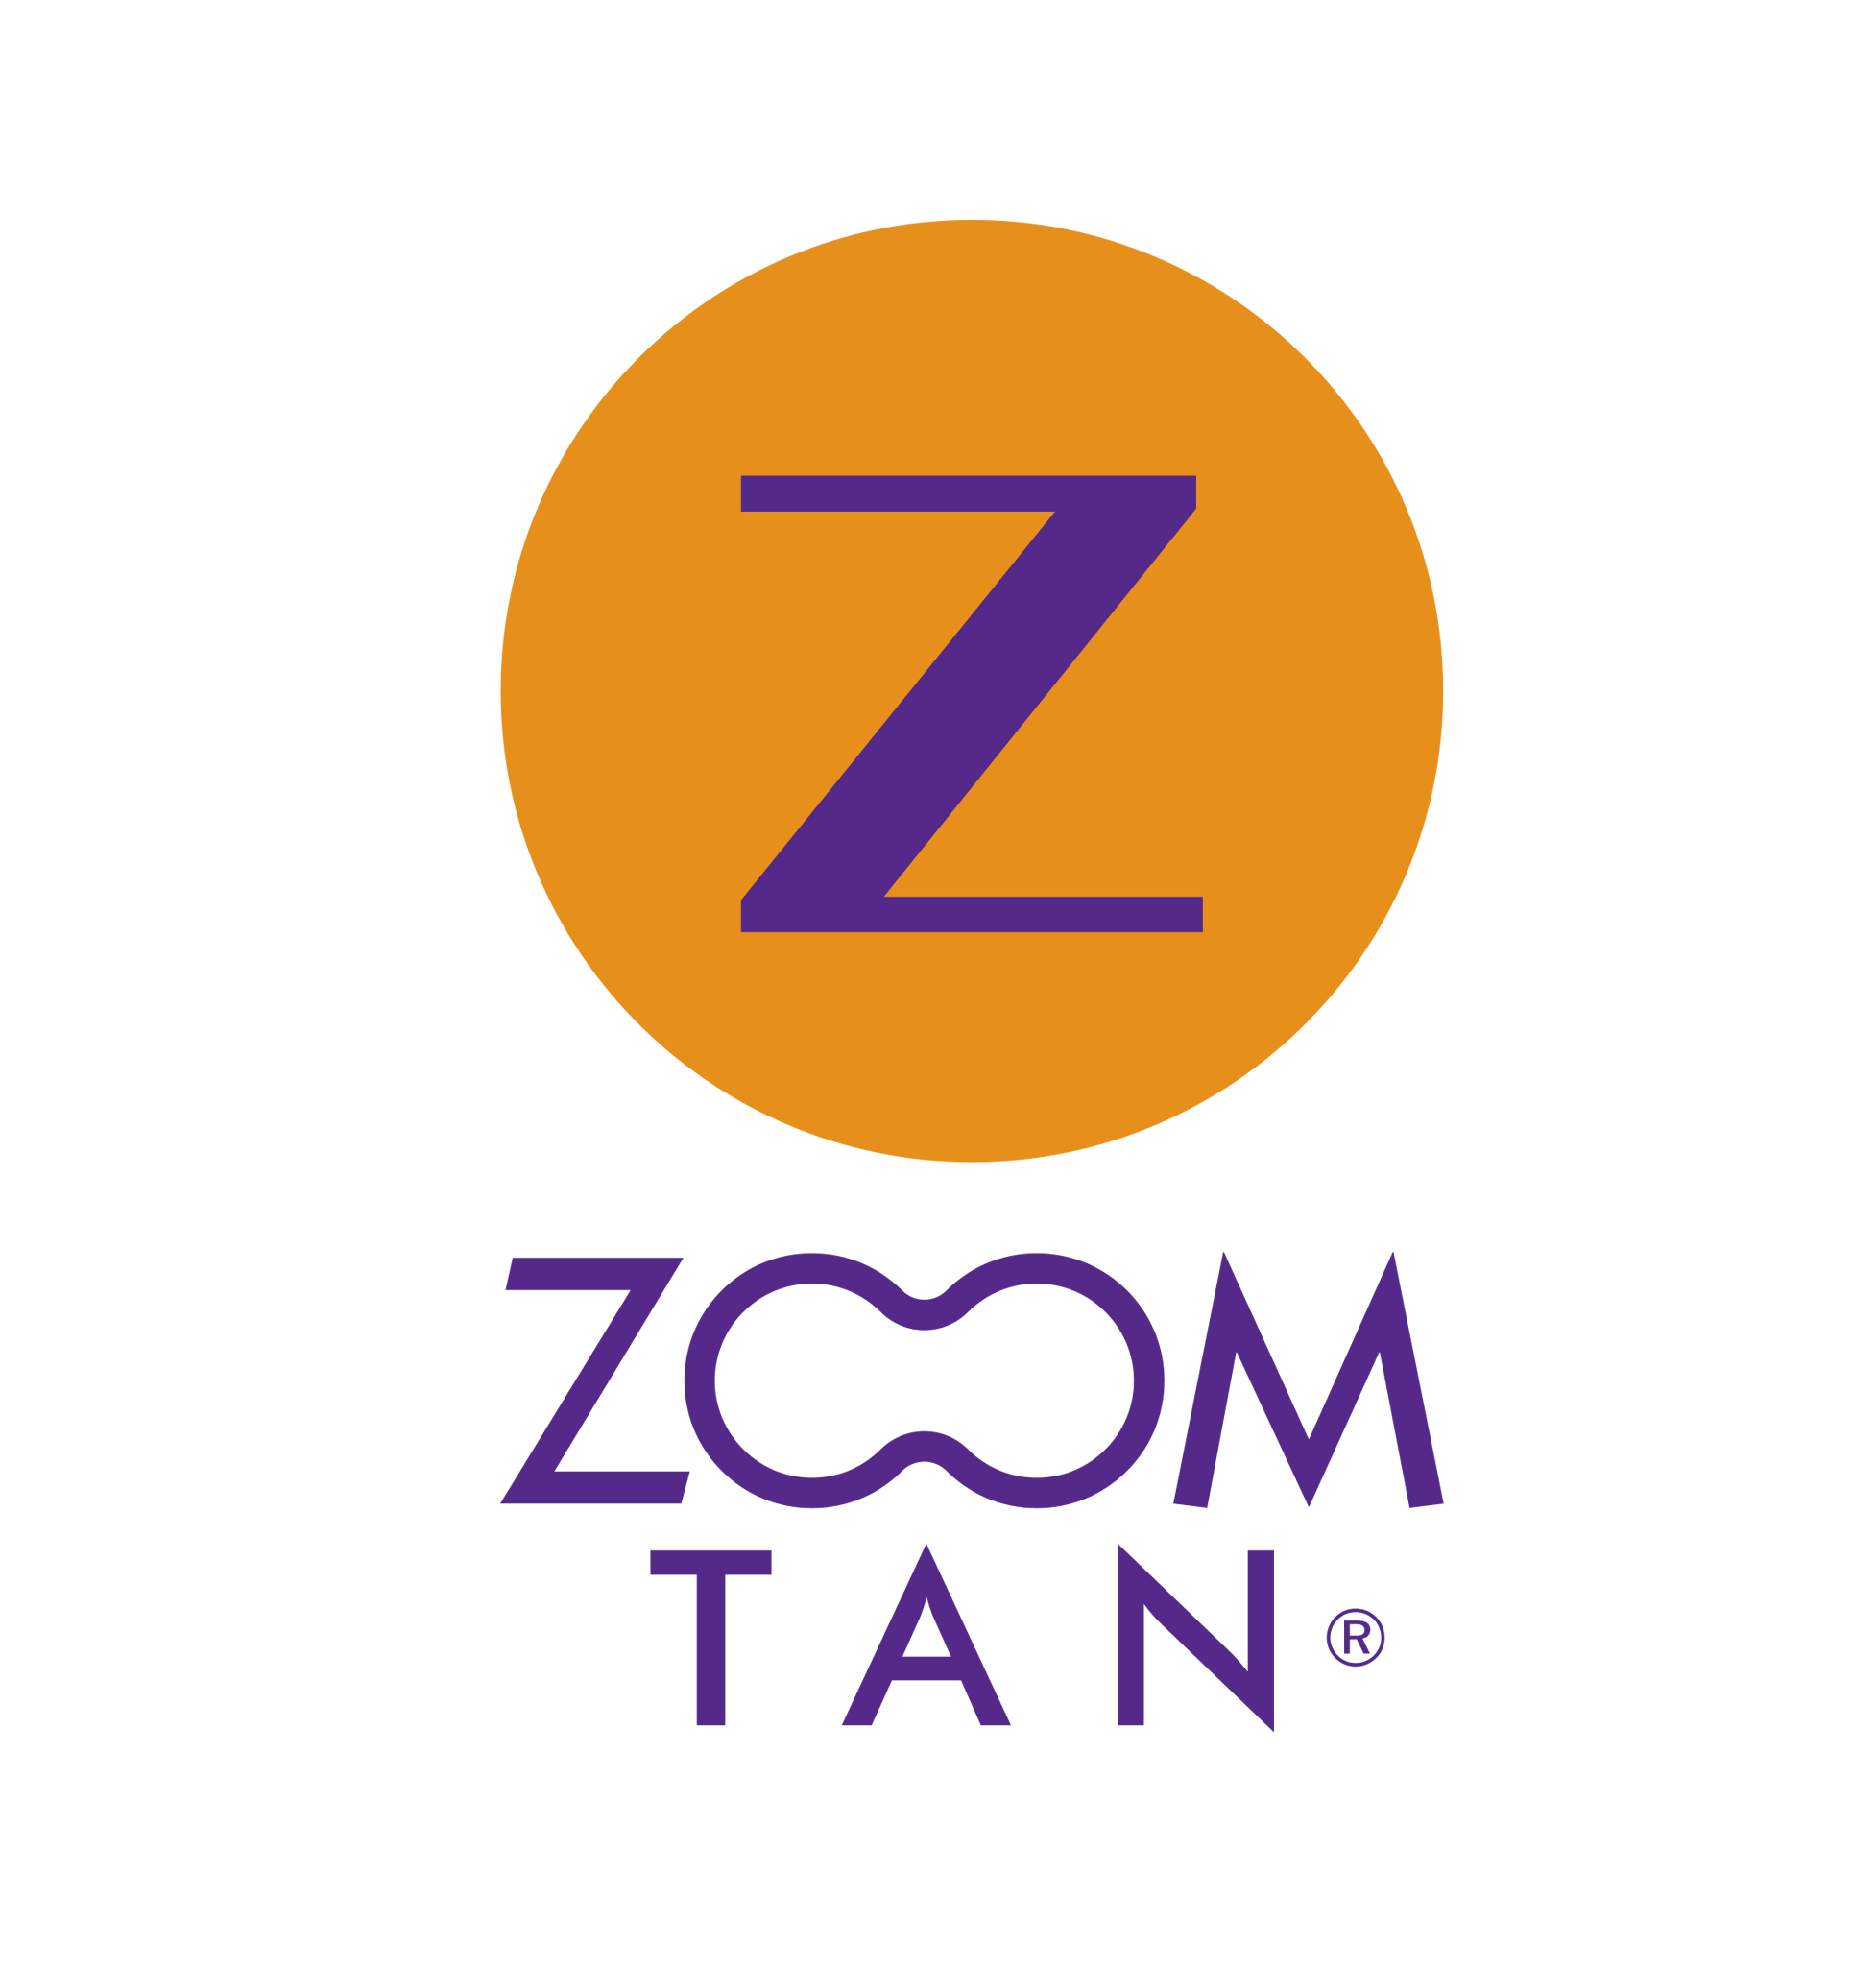 Zoom Tan Tanning Salon Logo